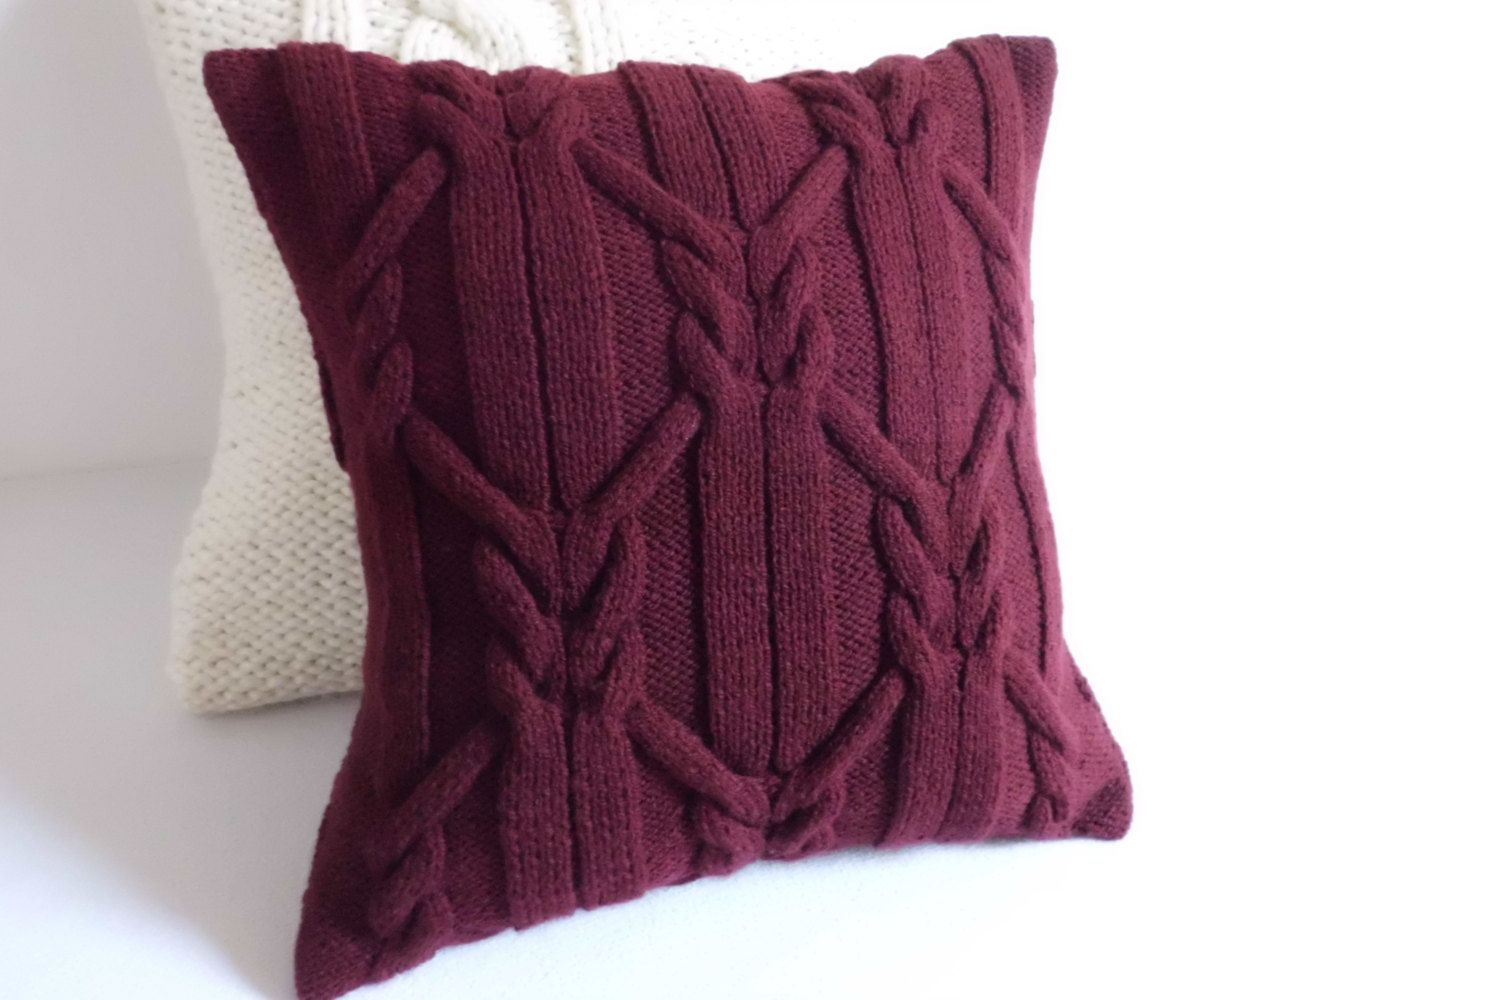 Marsala Cable Knit Pillow Cover Wine Hand Knit Pillow Case Etsy Knitted Cushion Covers Knitted Cushions Knitted Throws